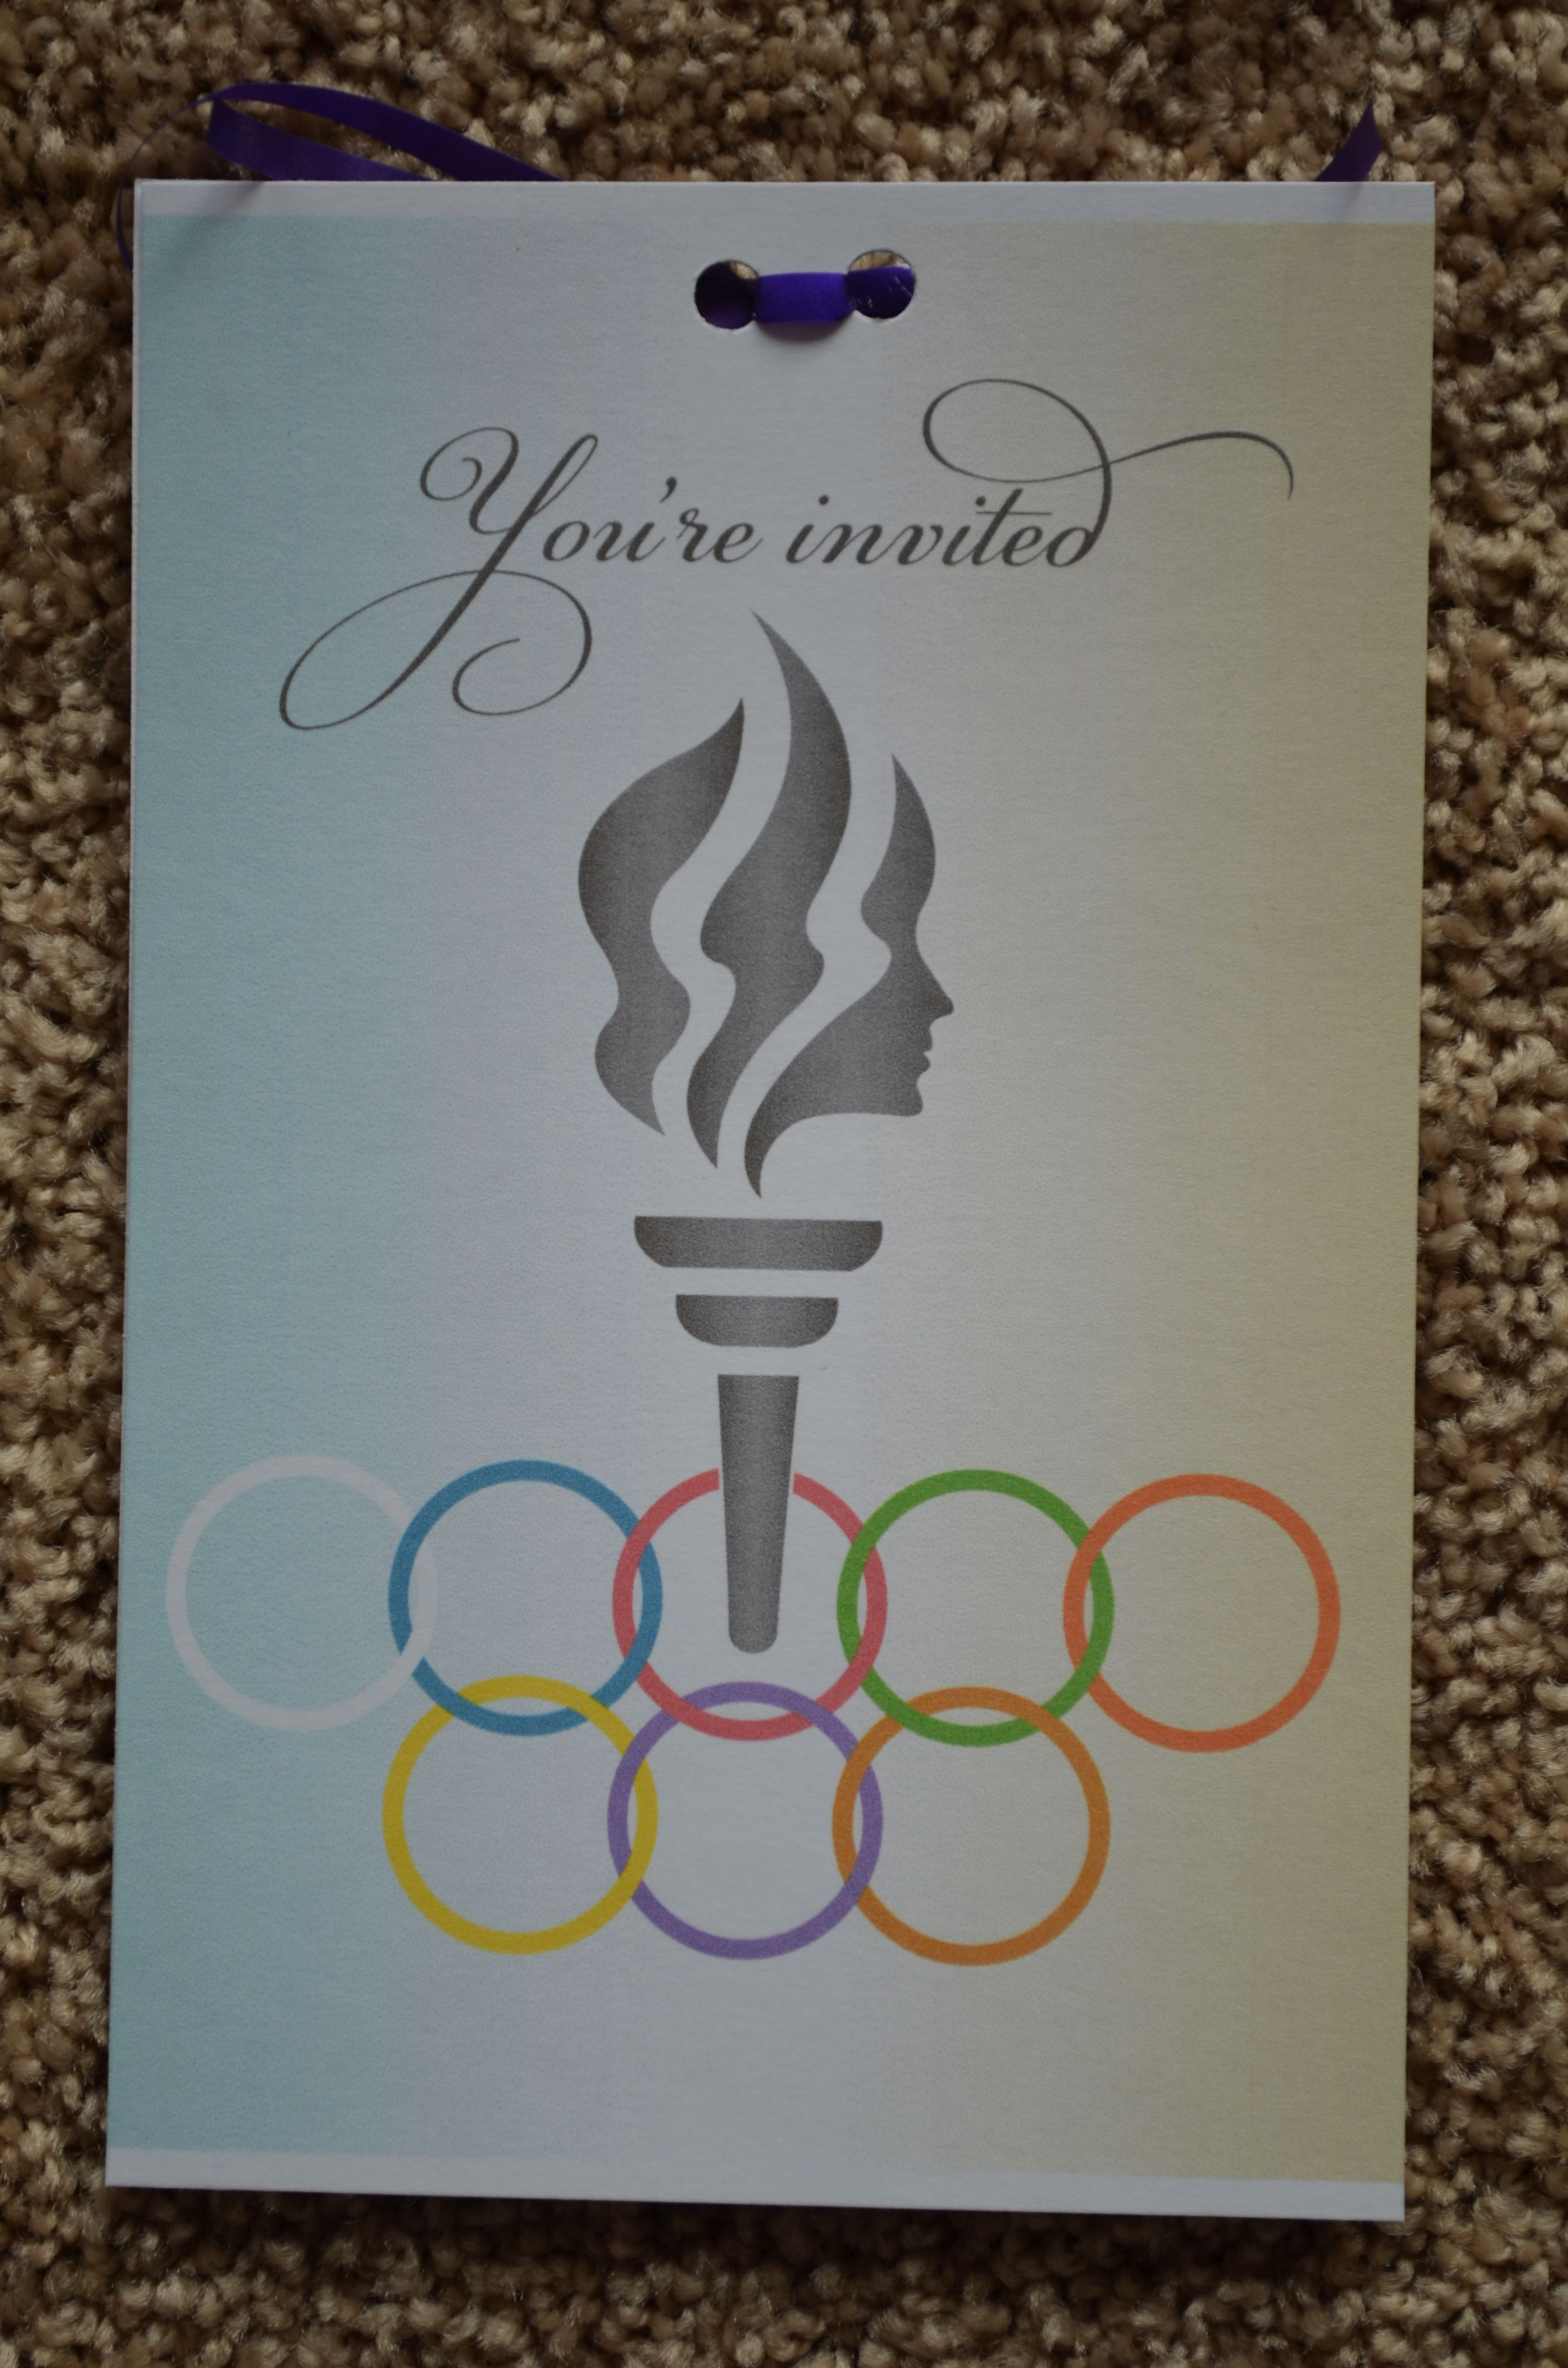 The Invitations To The Girls Were All Backed With The Olympic Flame